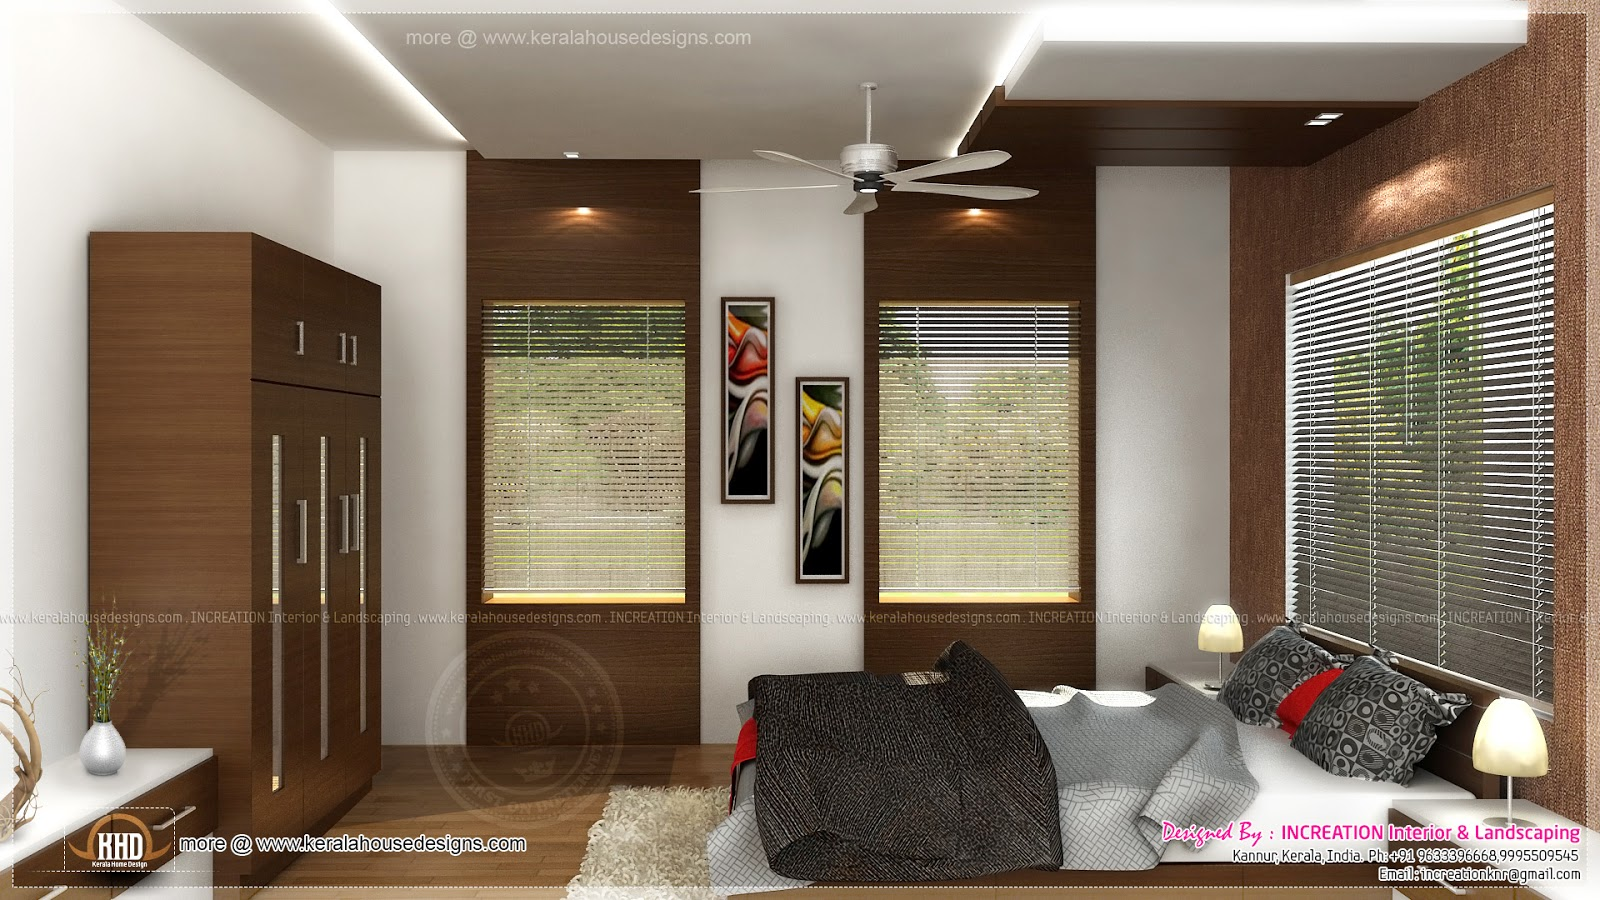 Interior designs from kannur kerala kerala home design and floor plans - Interior decoration of homes ...